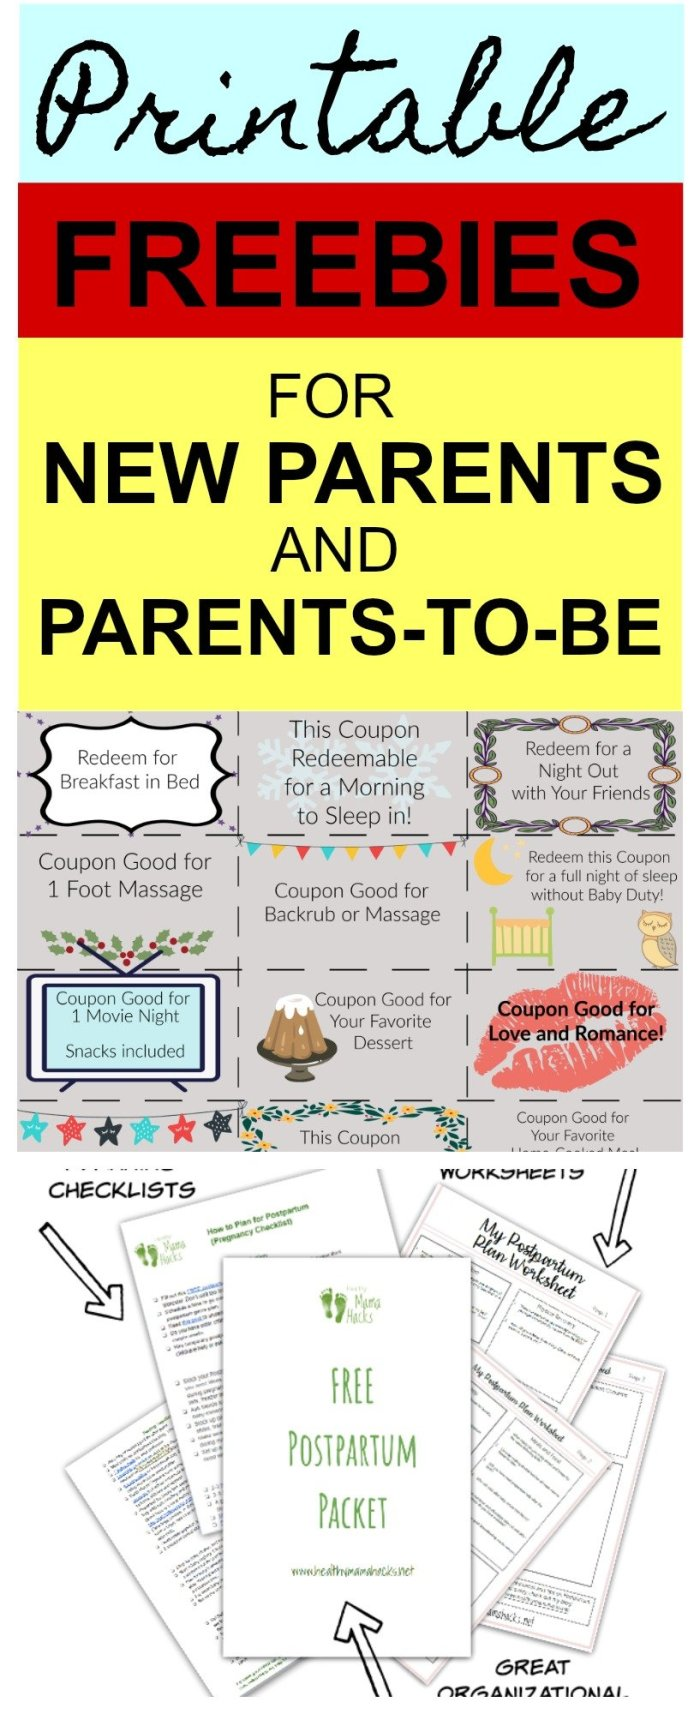 Download these printable freebies for new parents and parents-to-be! Fun gift ideas, planning worksheets, checklists for baby and so much more! #freebies, #newparents, #newmomprintables, #newmomfreebies, #babyfreebies. #freeprintables